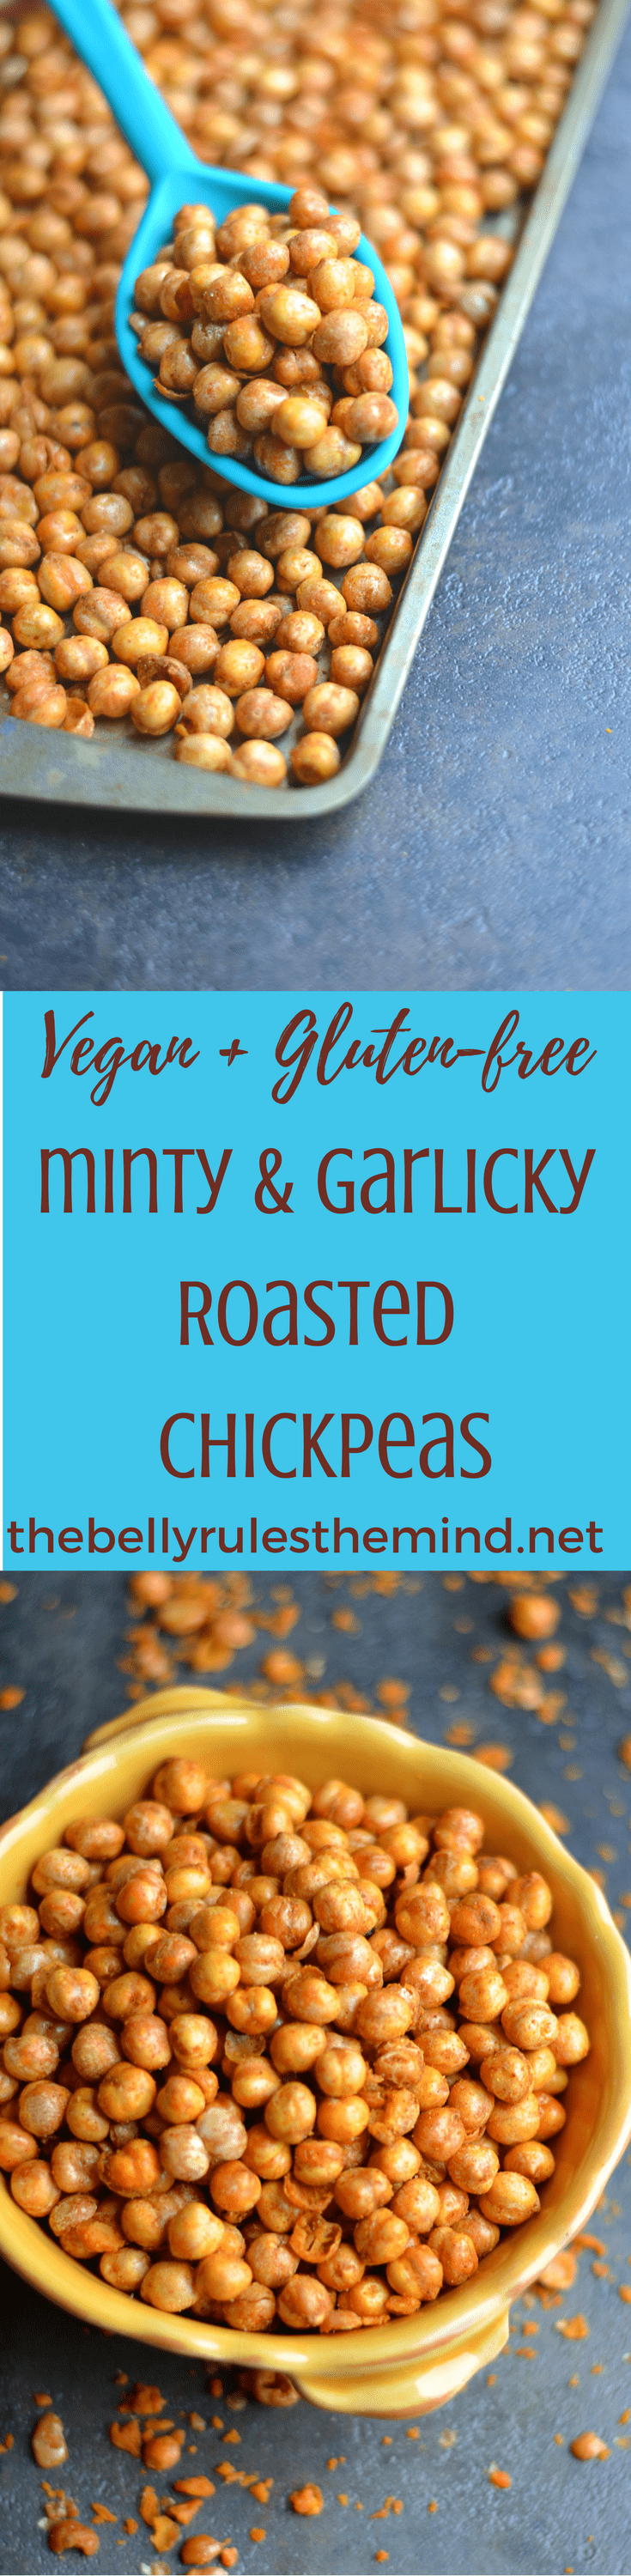 Minty & Garlicky Roasted Chickpeas-If you're looking for a healthy snack to satisfy that mid-day, salty, crunchy craving, then these Minty & Garlicky Roasted Chickpeas are the go-to recipe!.Vegan.|https://www.thebellyrulestheind.net @bellyrulesdmind